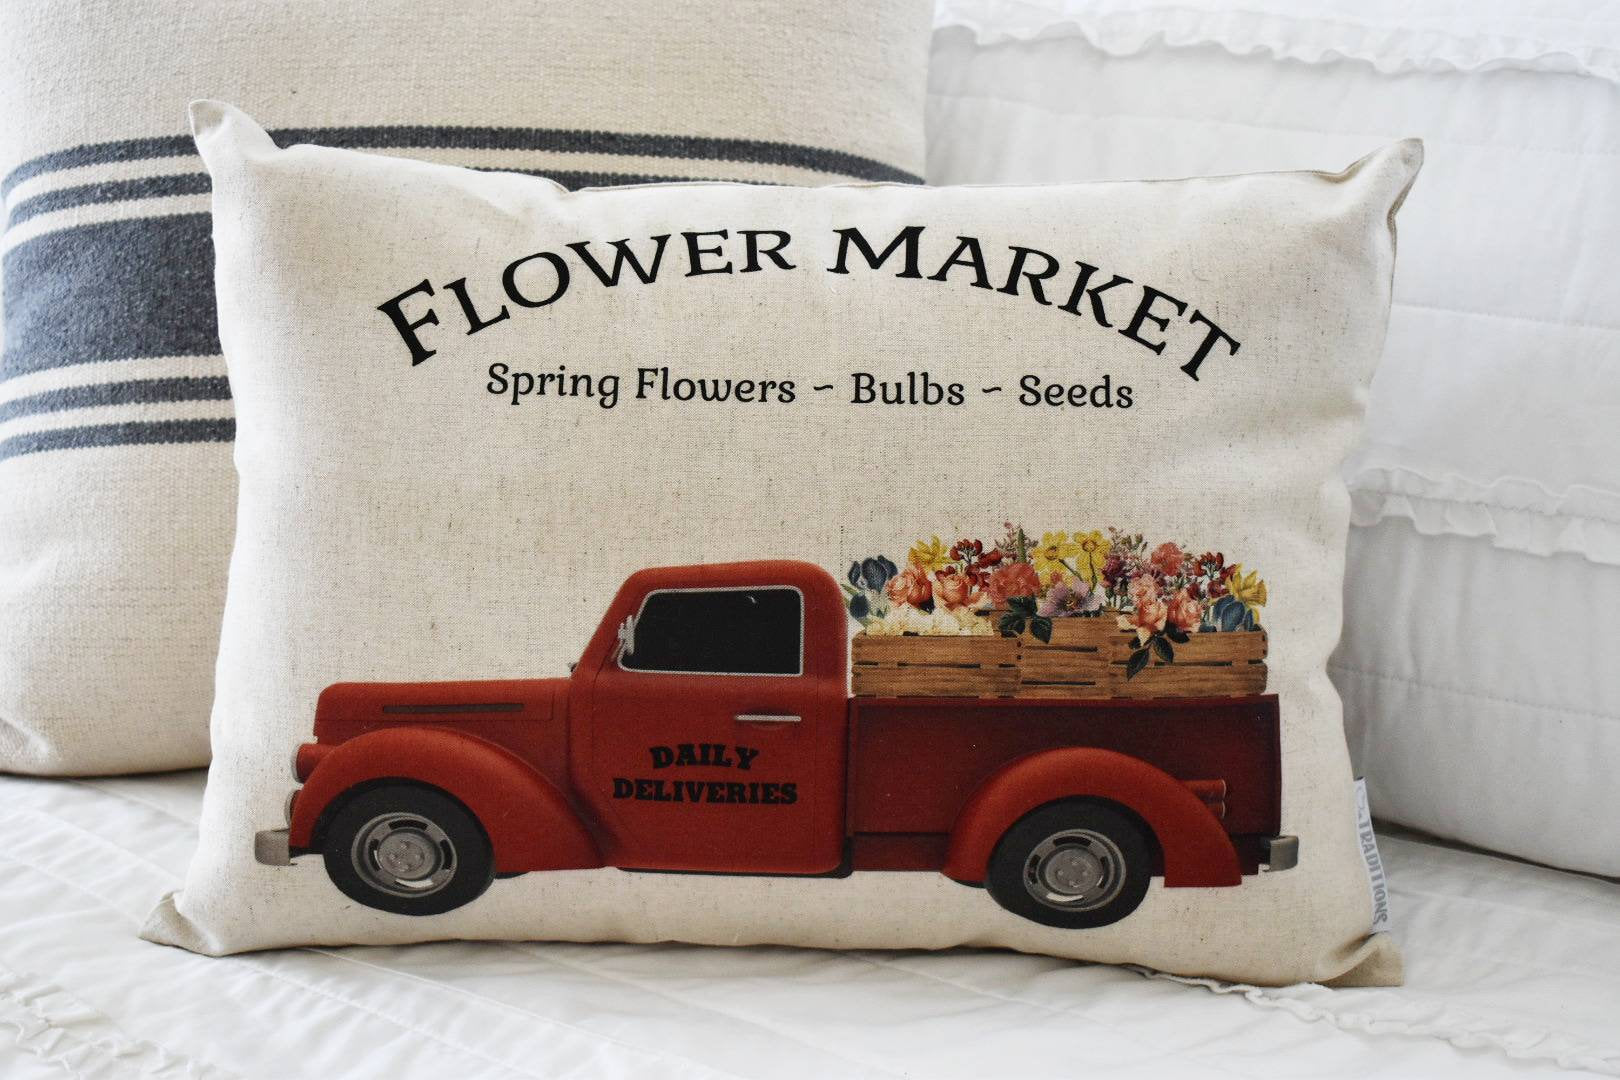 Flower market pillow cover, truck Pillow Cover, Fall pillow cover, 14x20, red truck